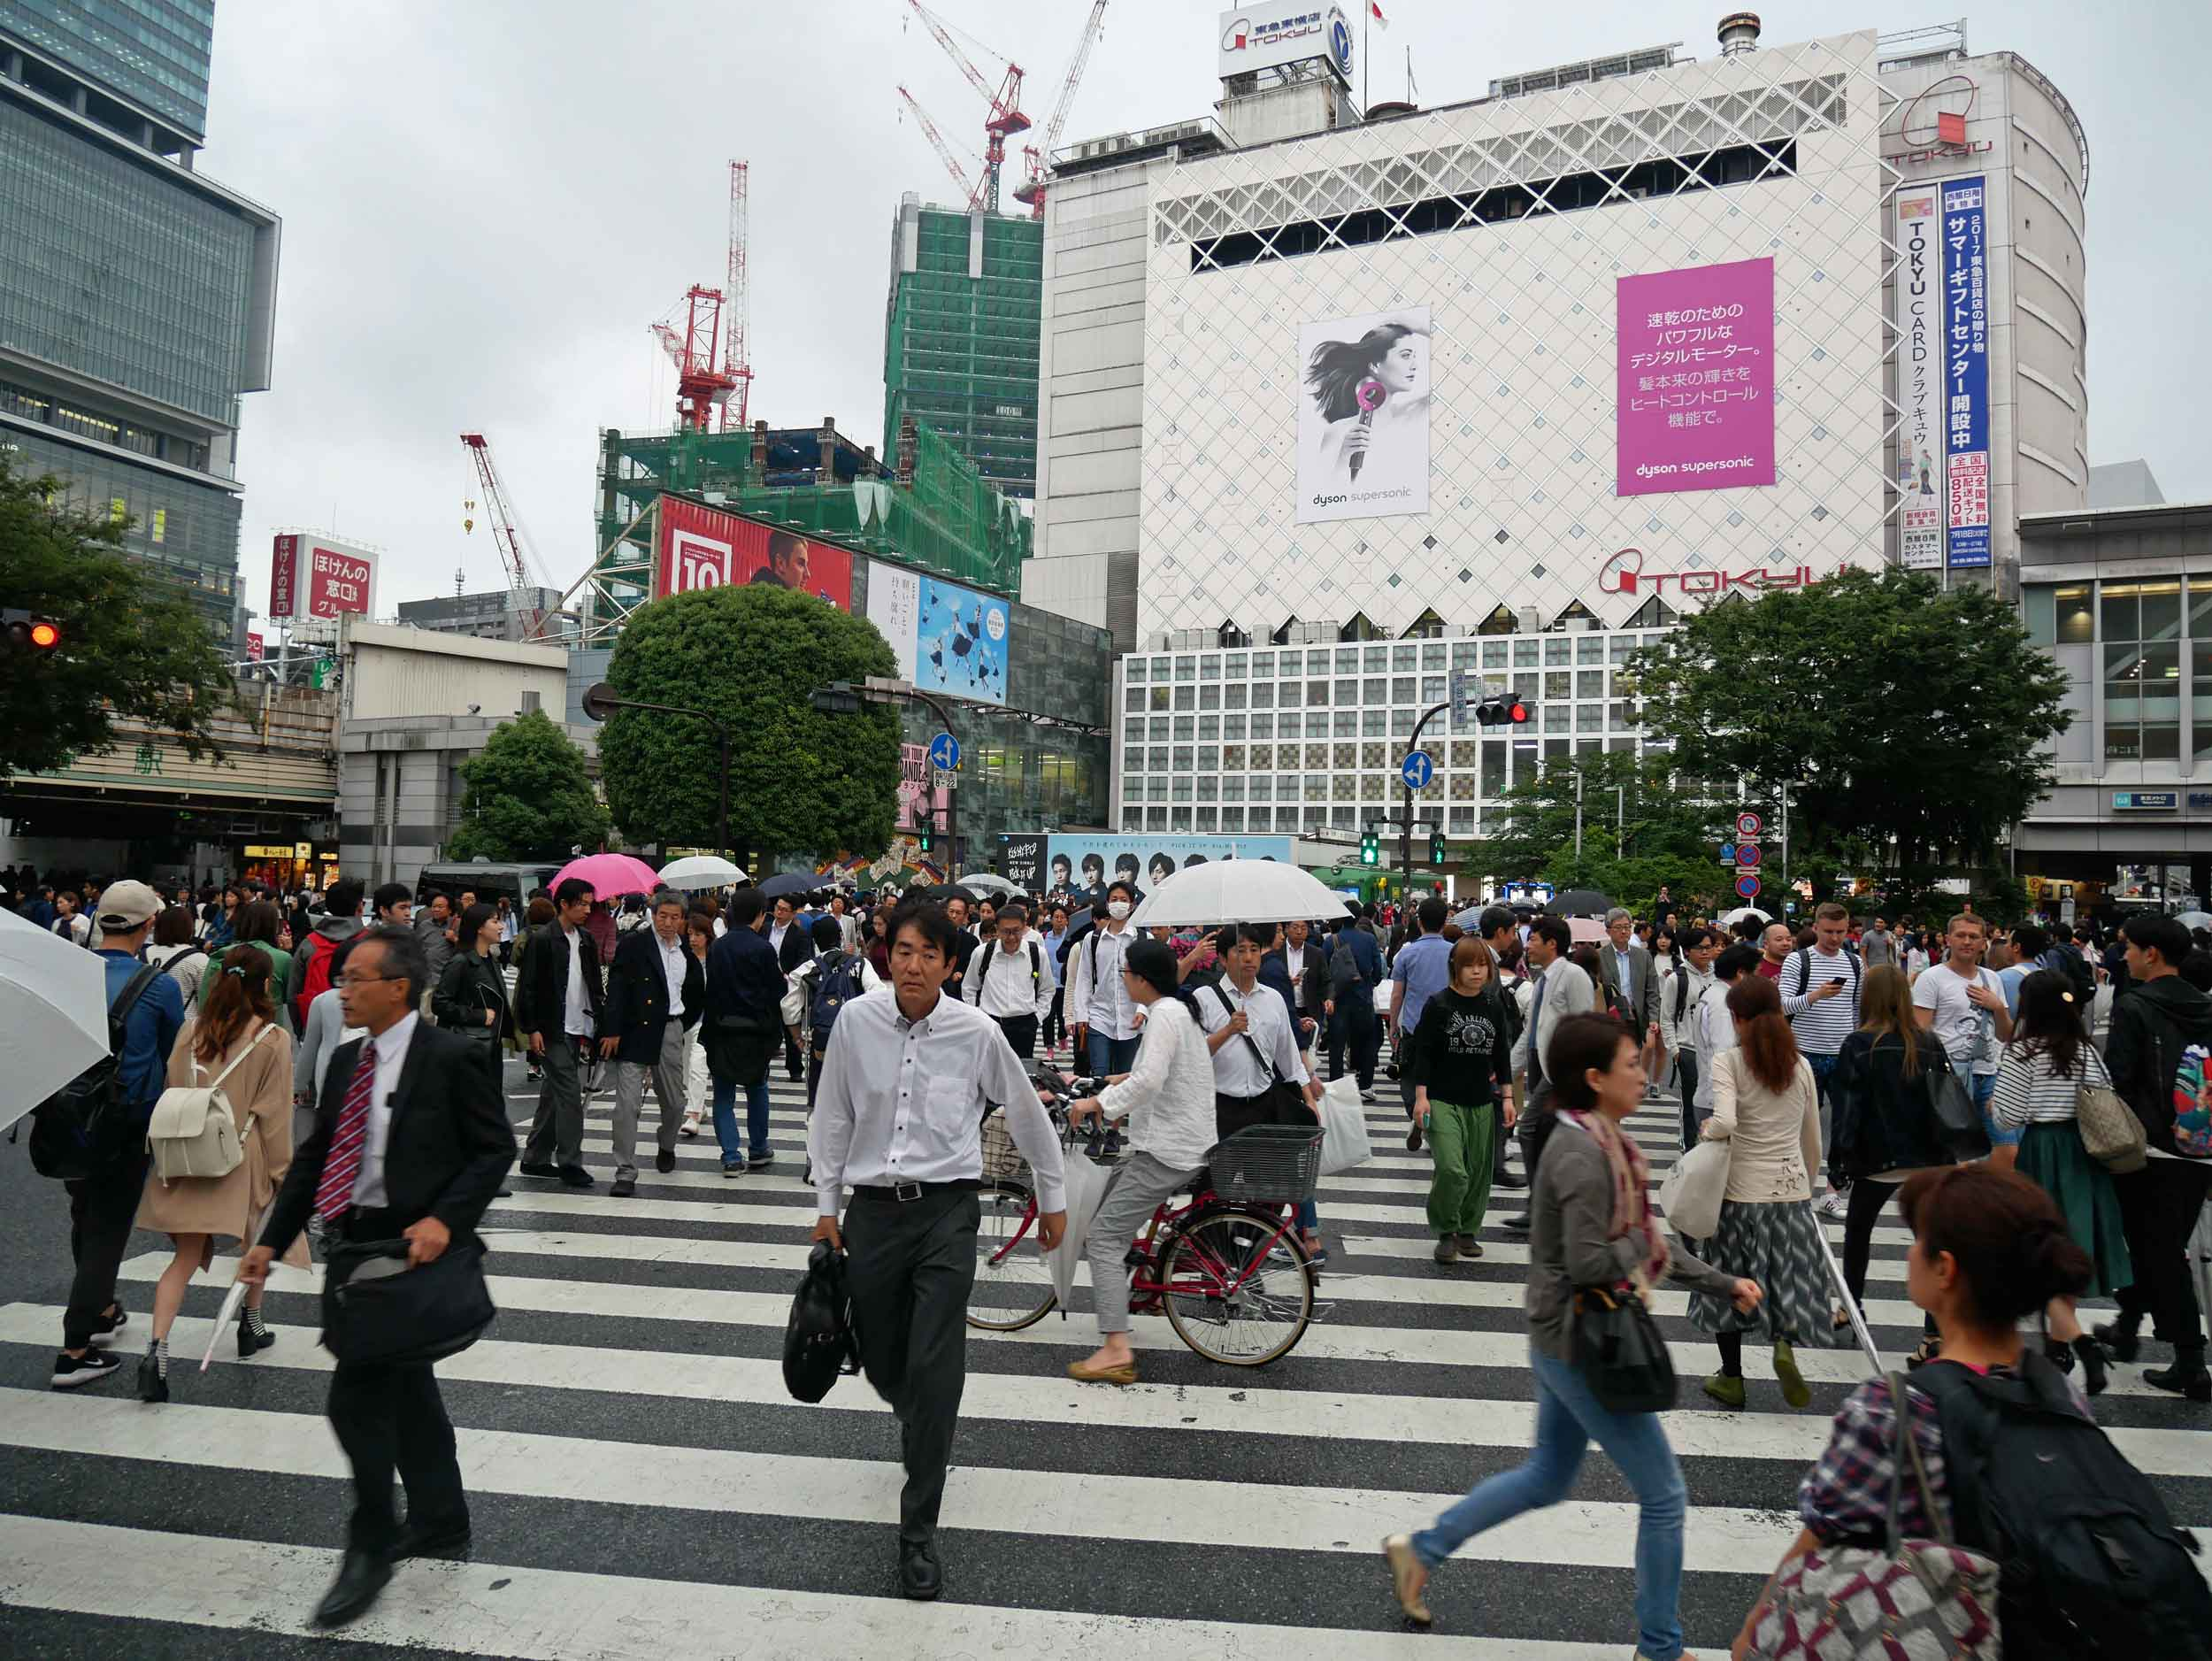 Making our way back through busy Shibuya Crossing in time for evening rush hour.